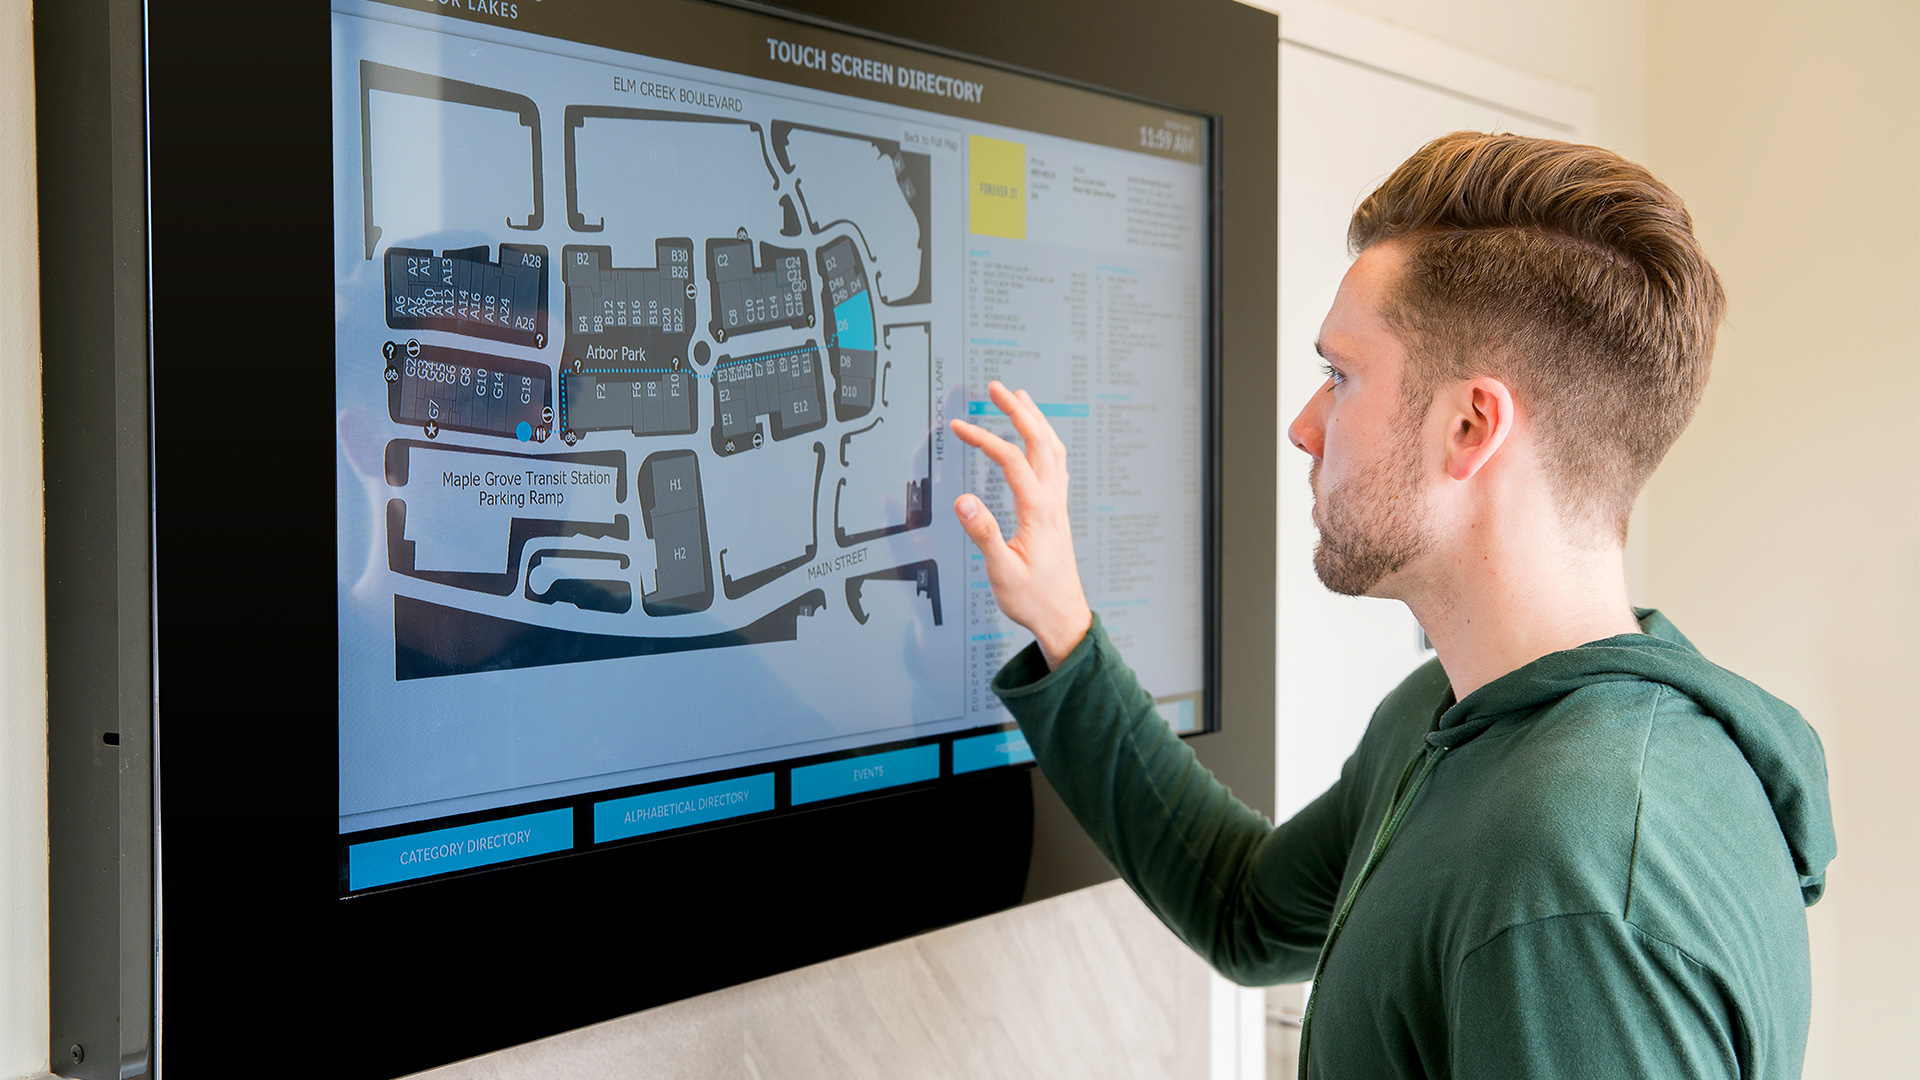 Should Your Campus Implement Wayfinding Technology?